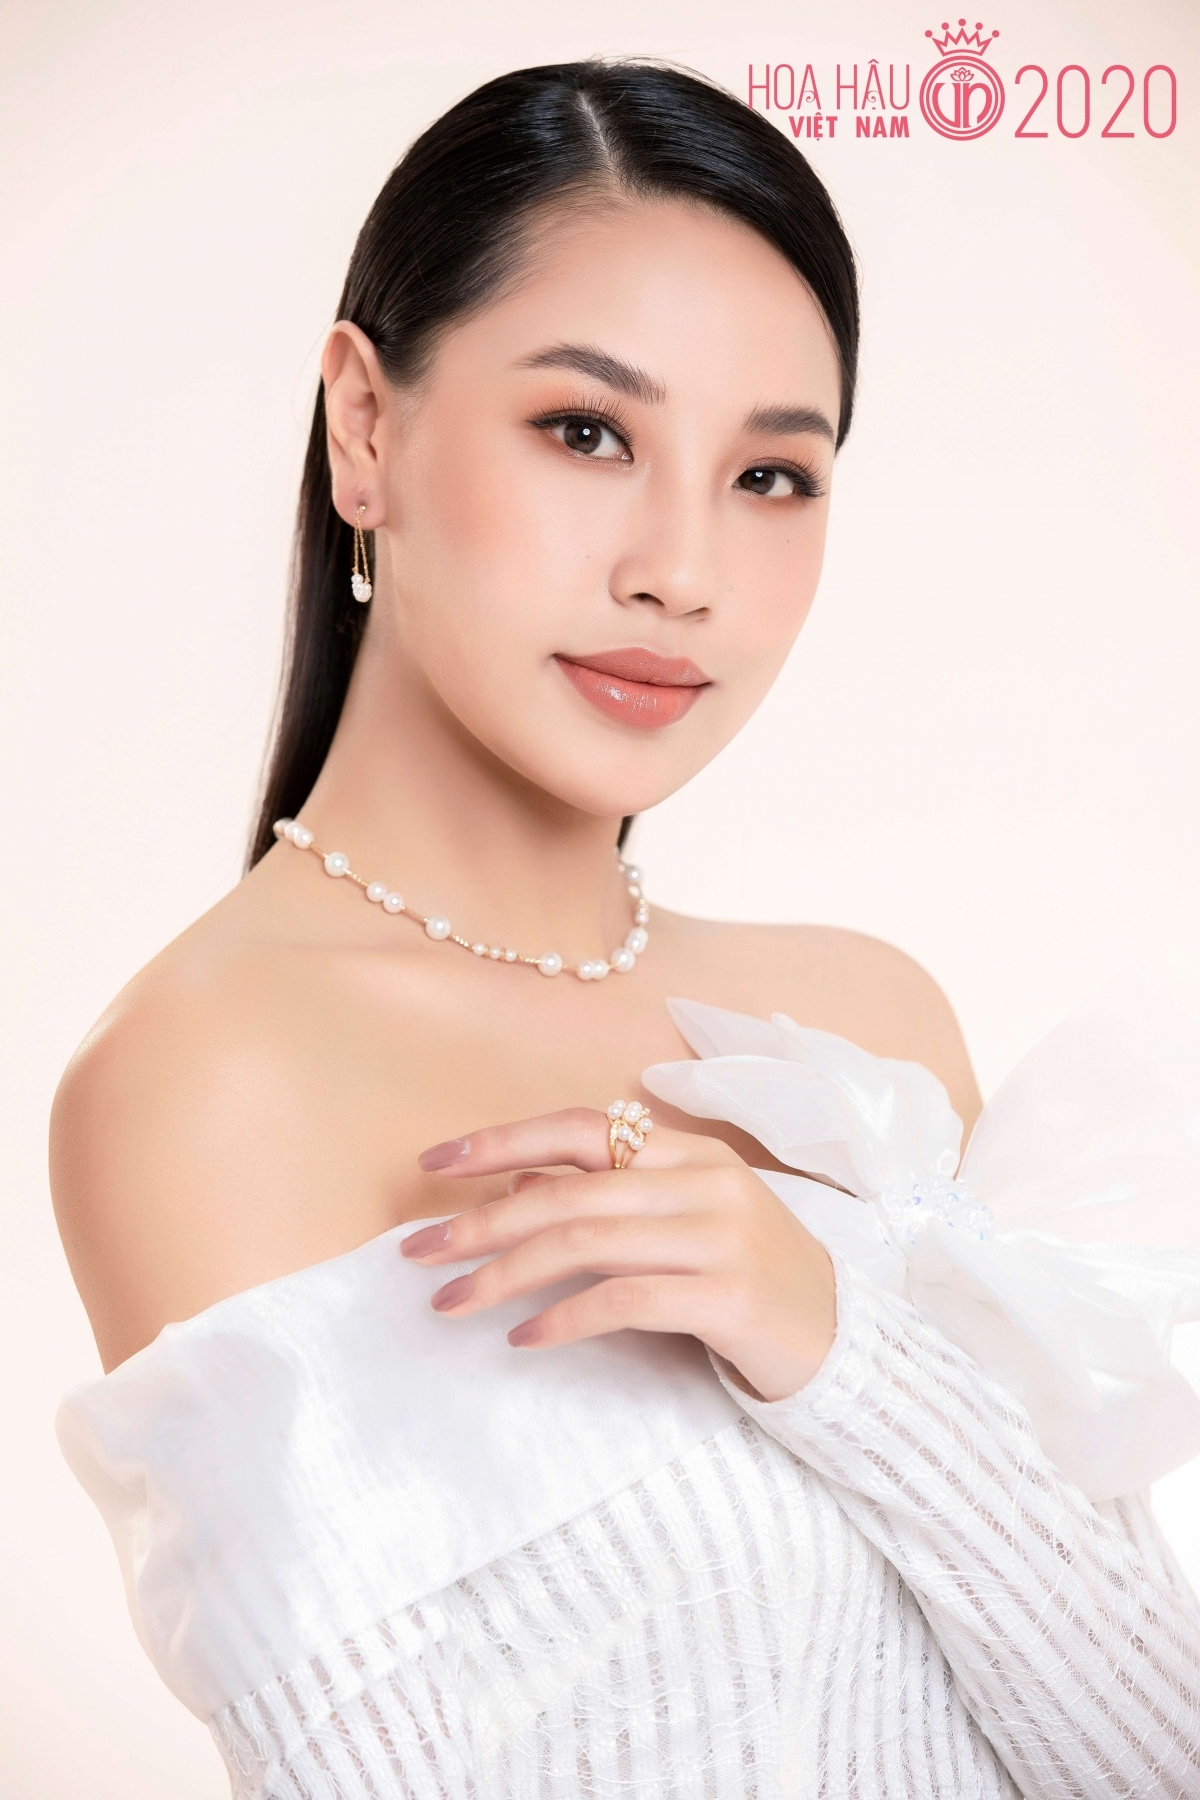 Contestant Doan Tuong Linh